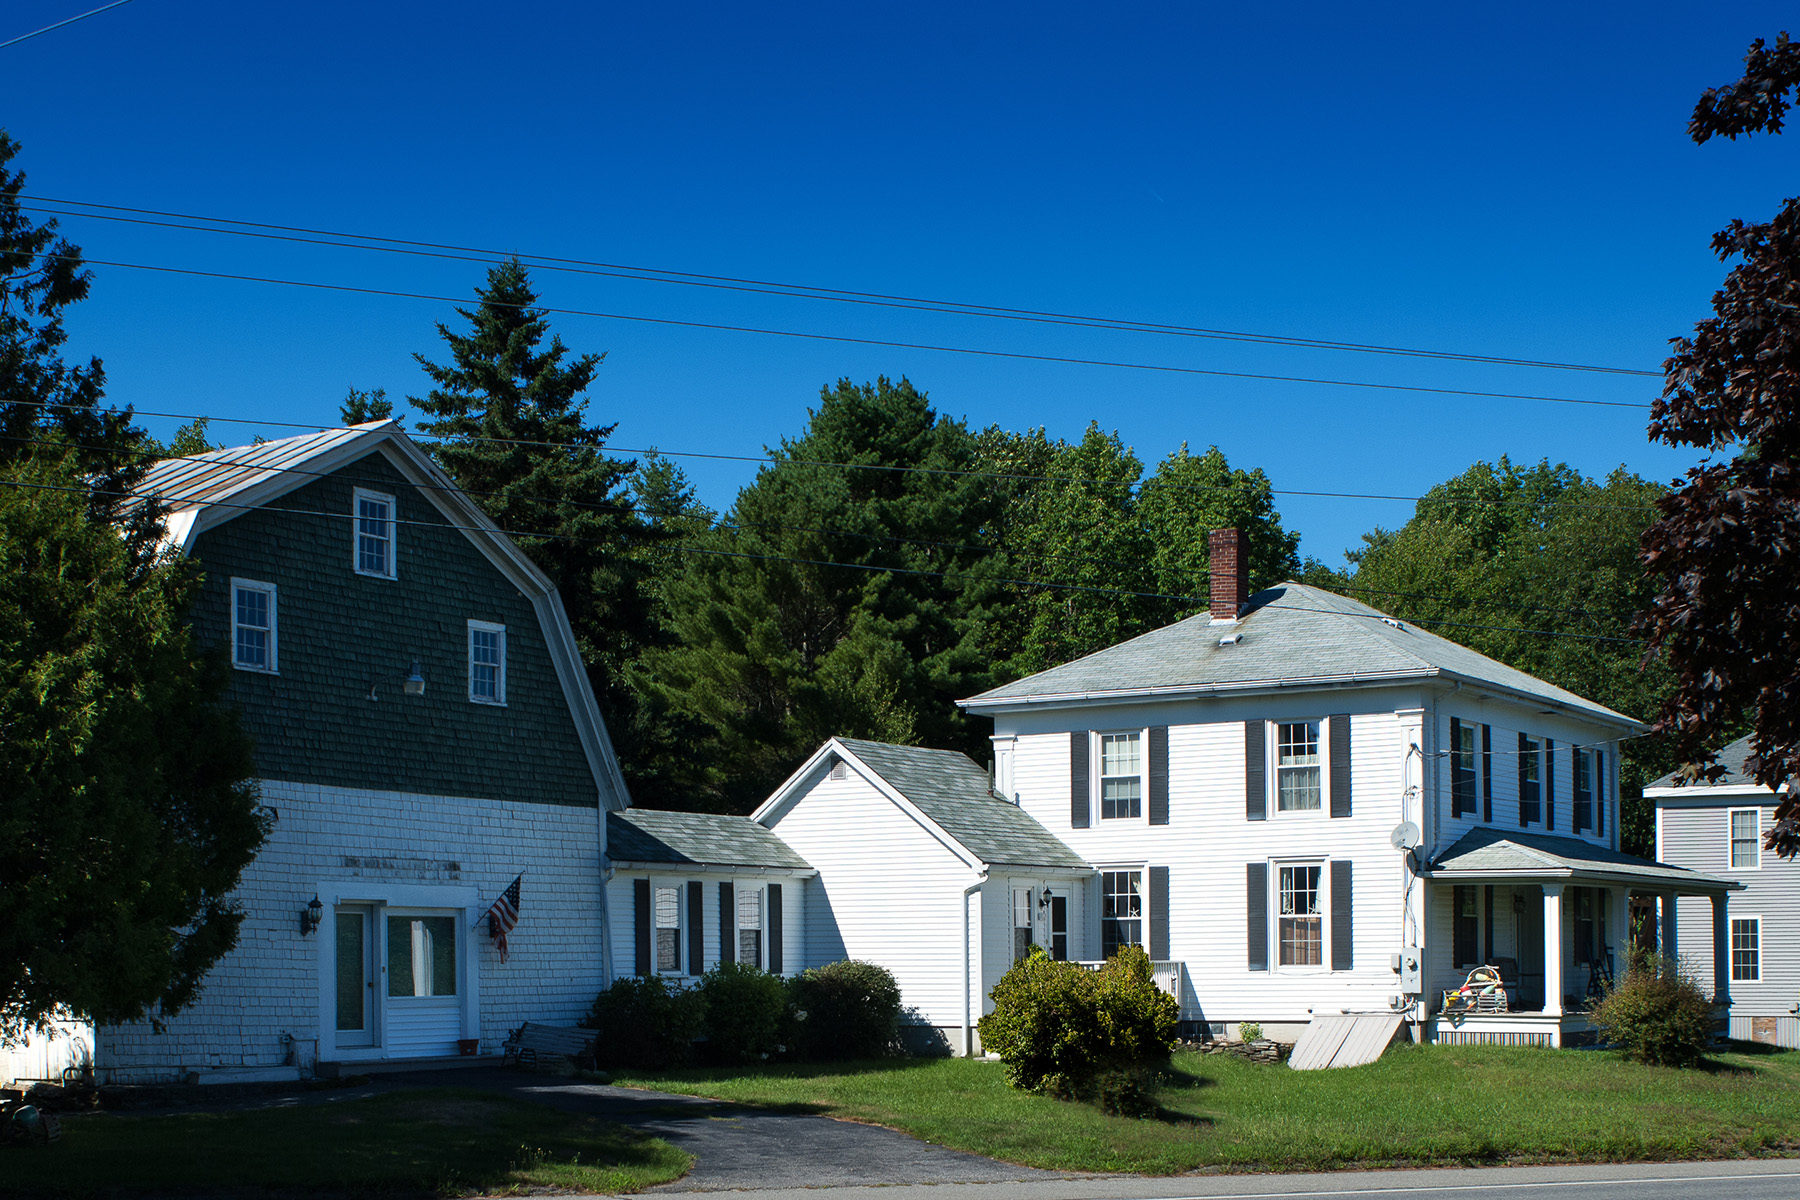 Commercial for Sale at 102 Ocean Point Road Boothbay Harbor, Maine 04538 United States